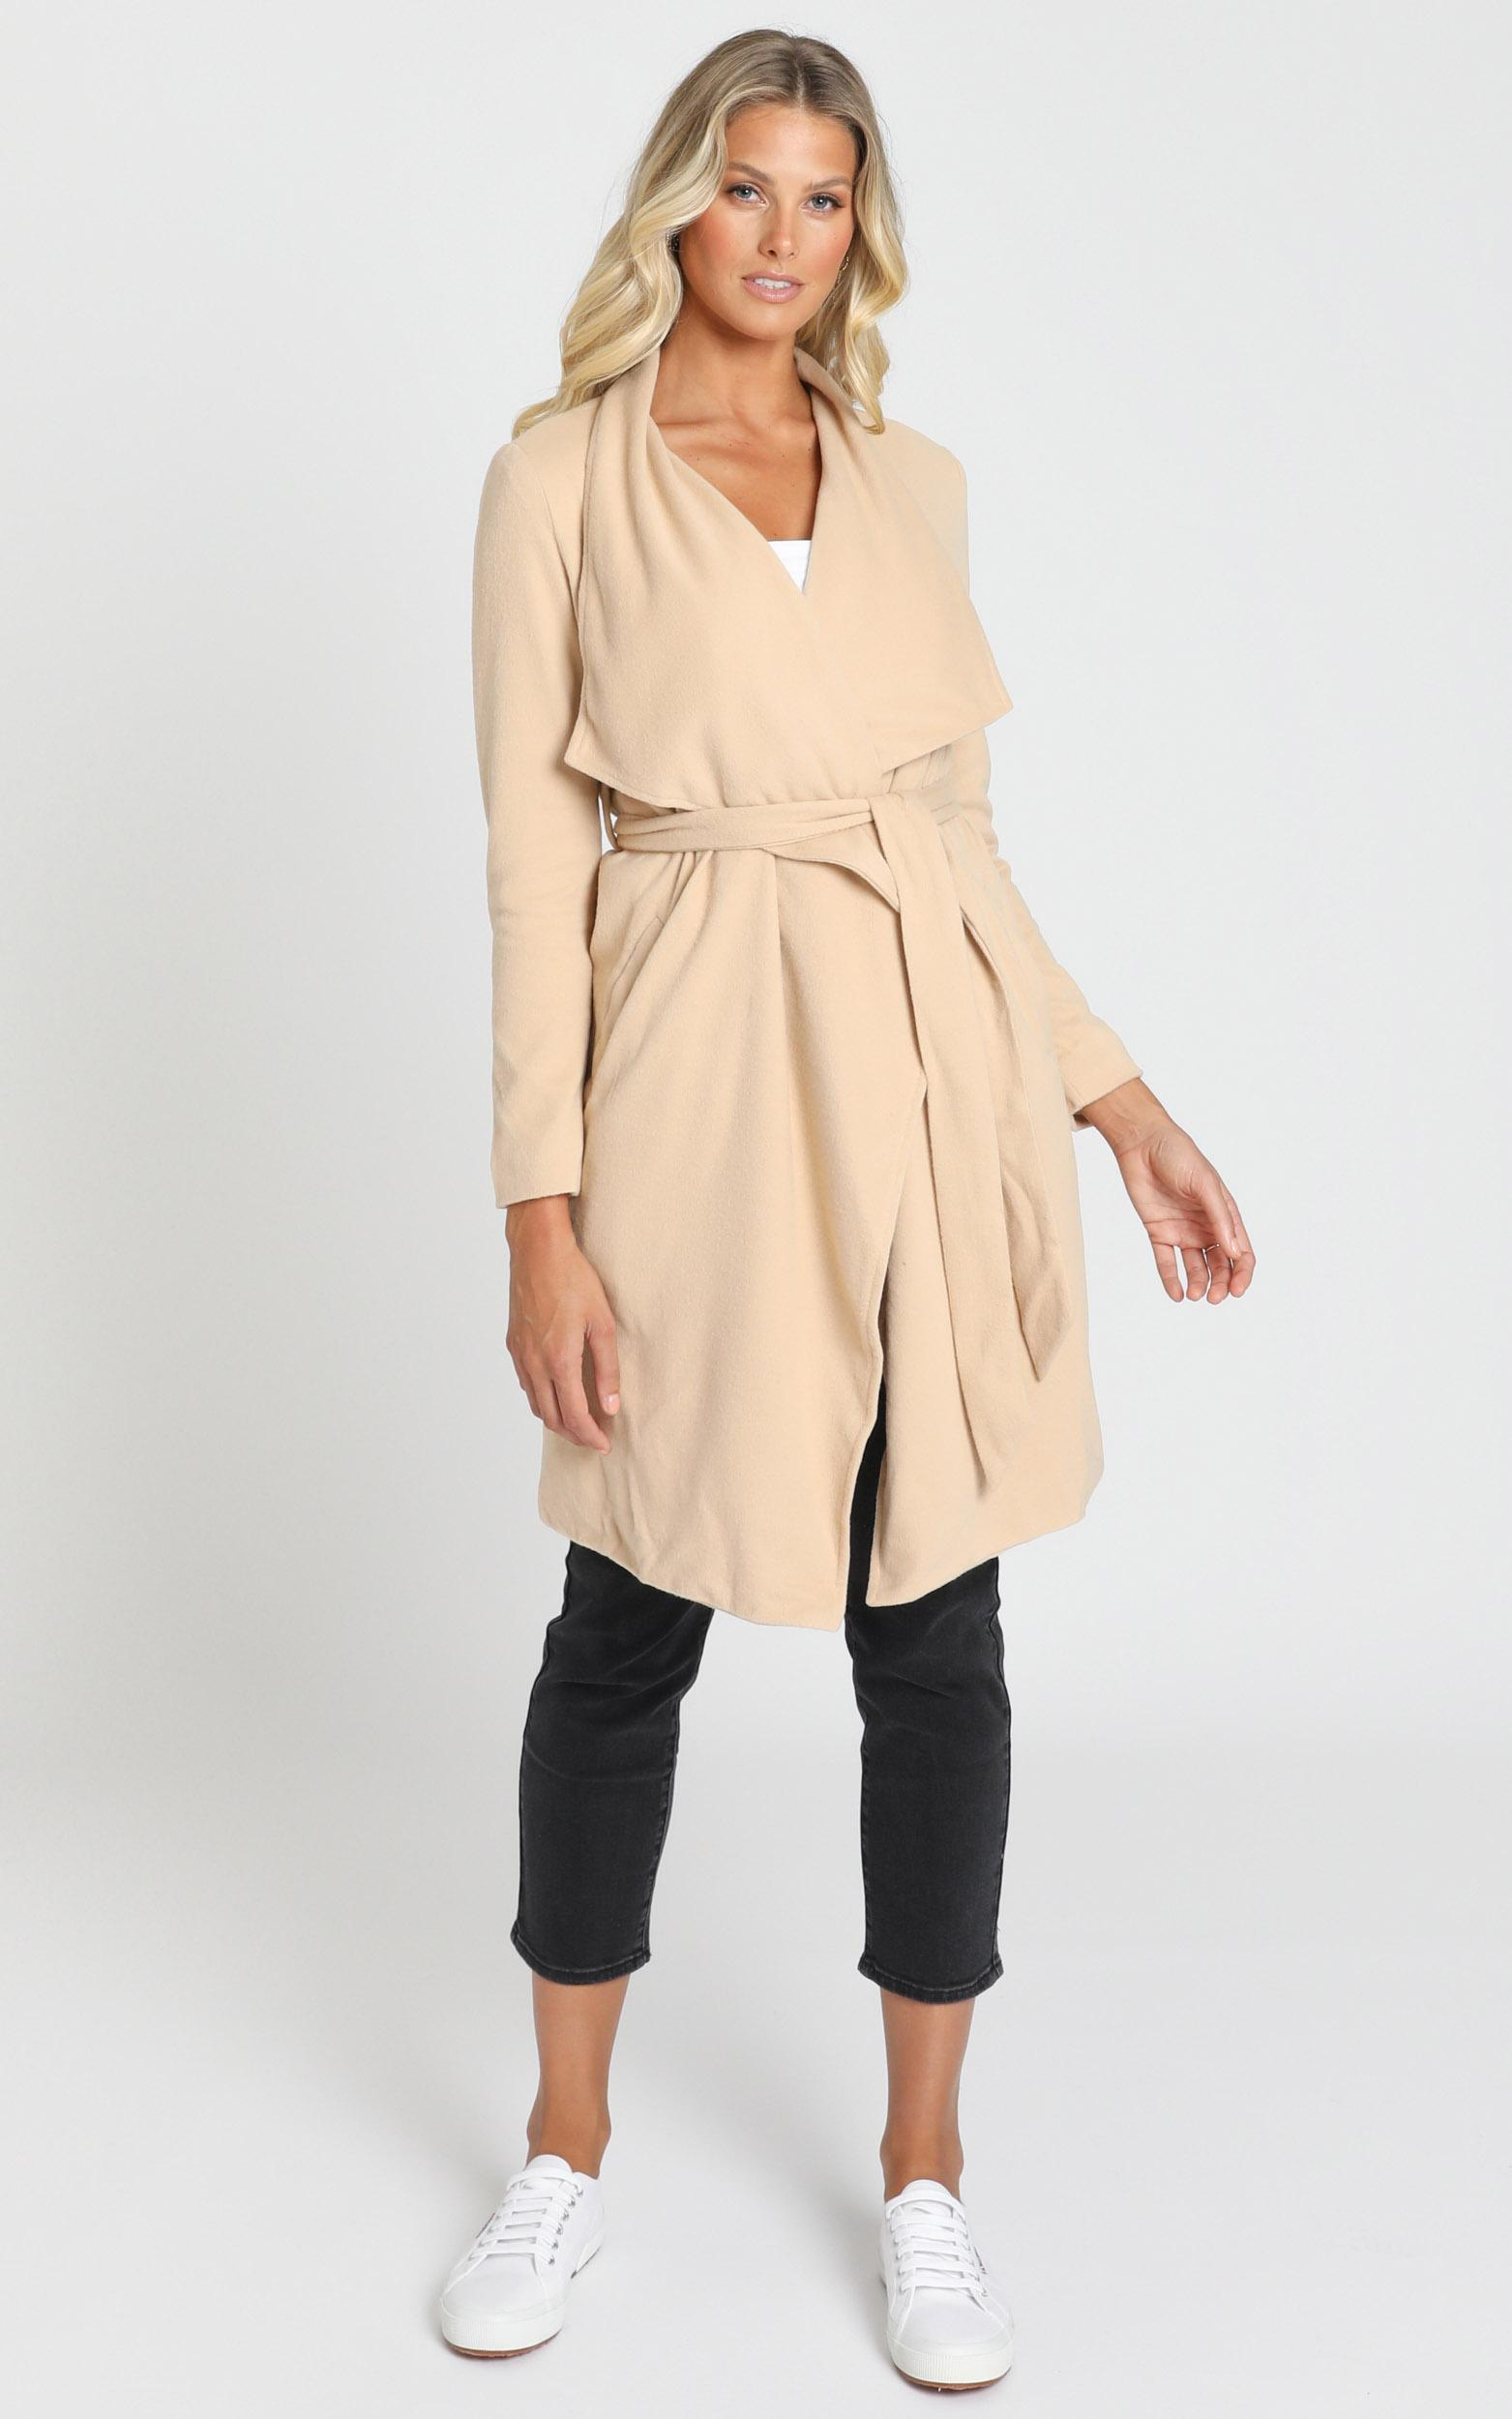 Feeling Lucky coat in camel - 20 (XXXXL), Camel, hi-res image number null